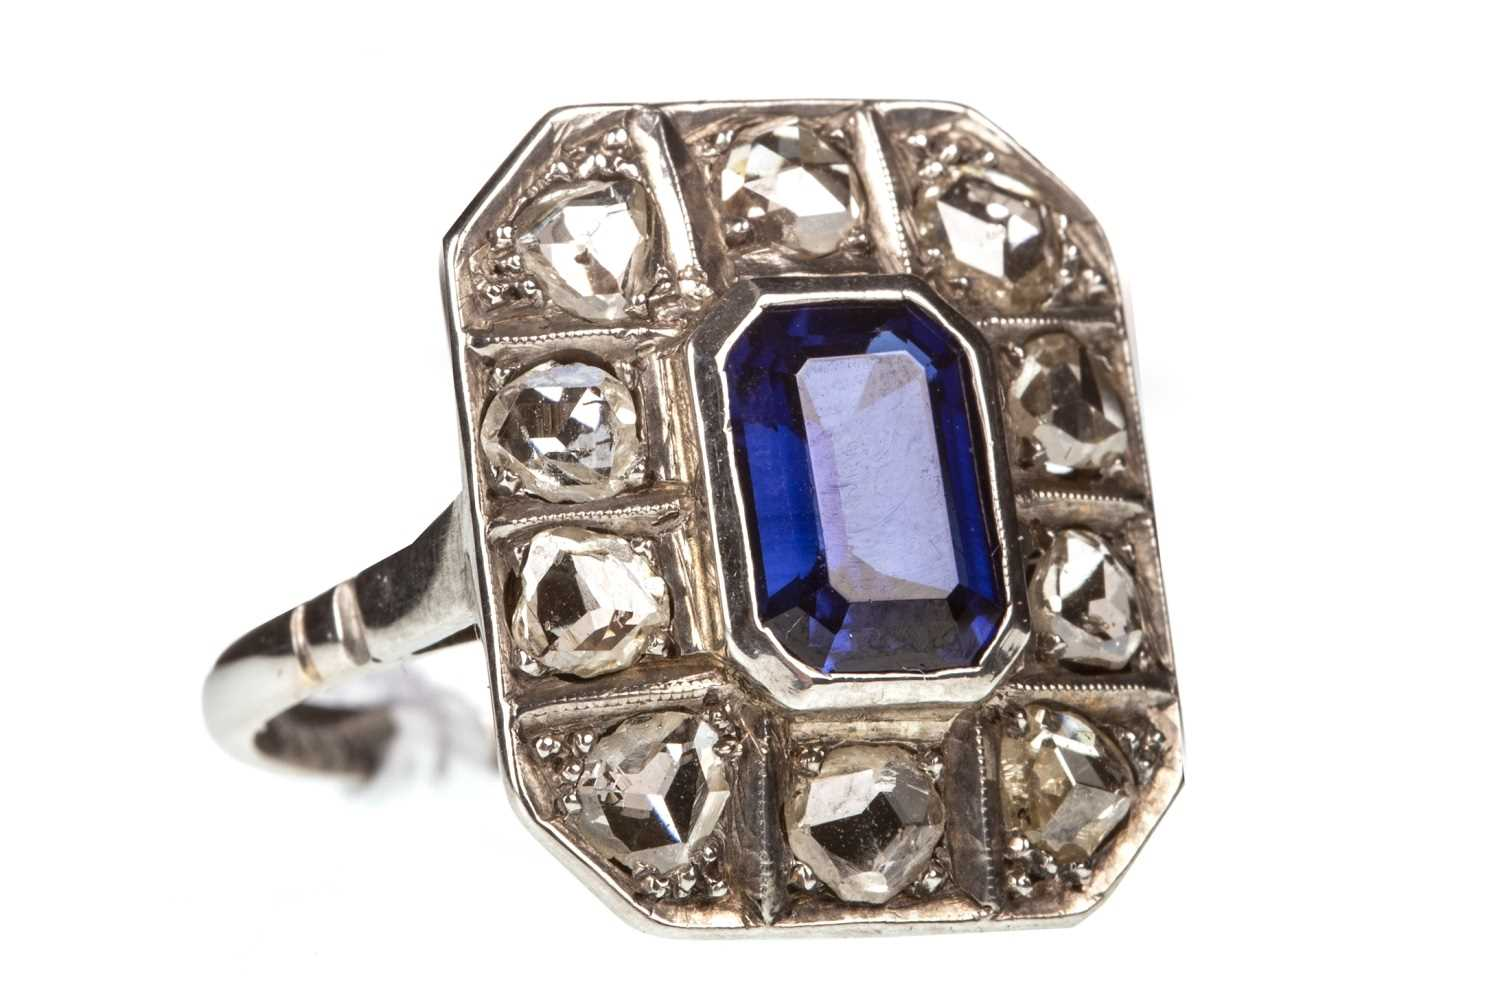 Lot 13-AN ART DECO DIAMOND AND BLUE GEM RING